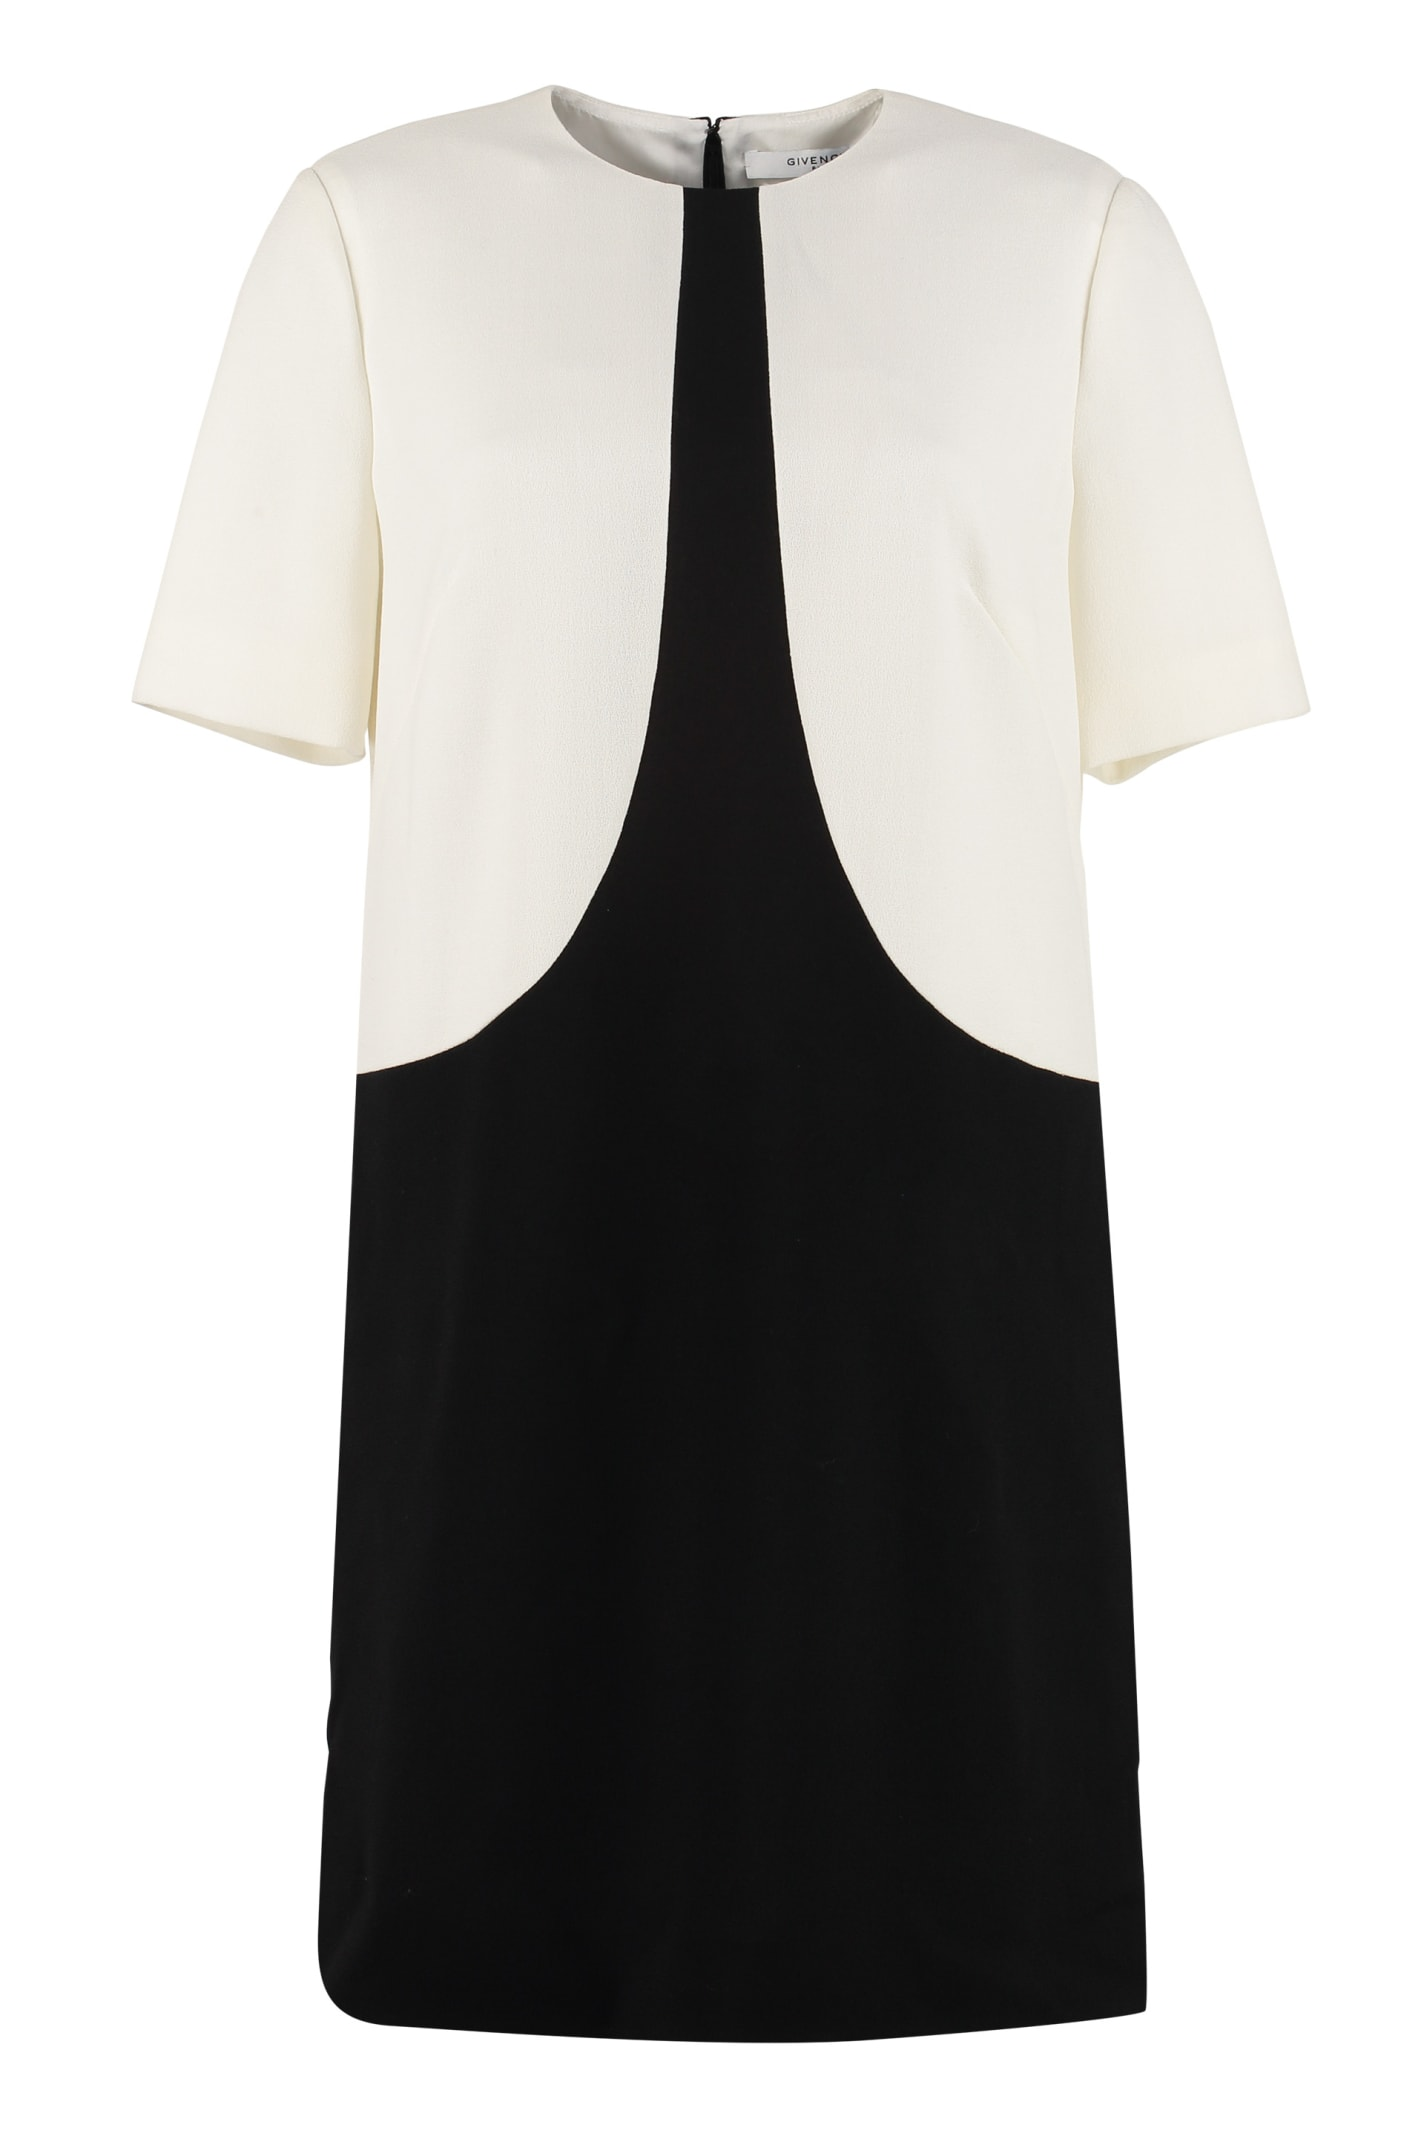 Givenchy Wool Crepe Dress